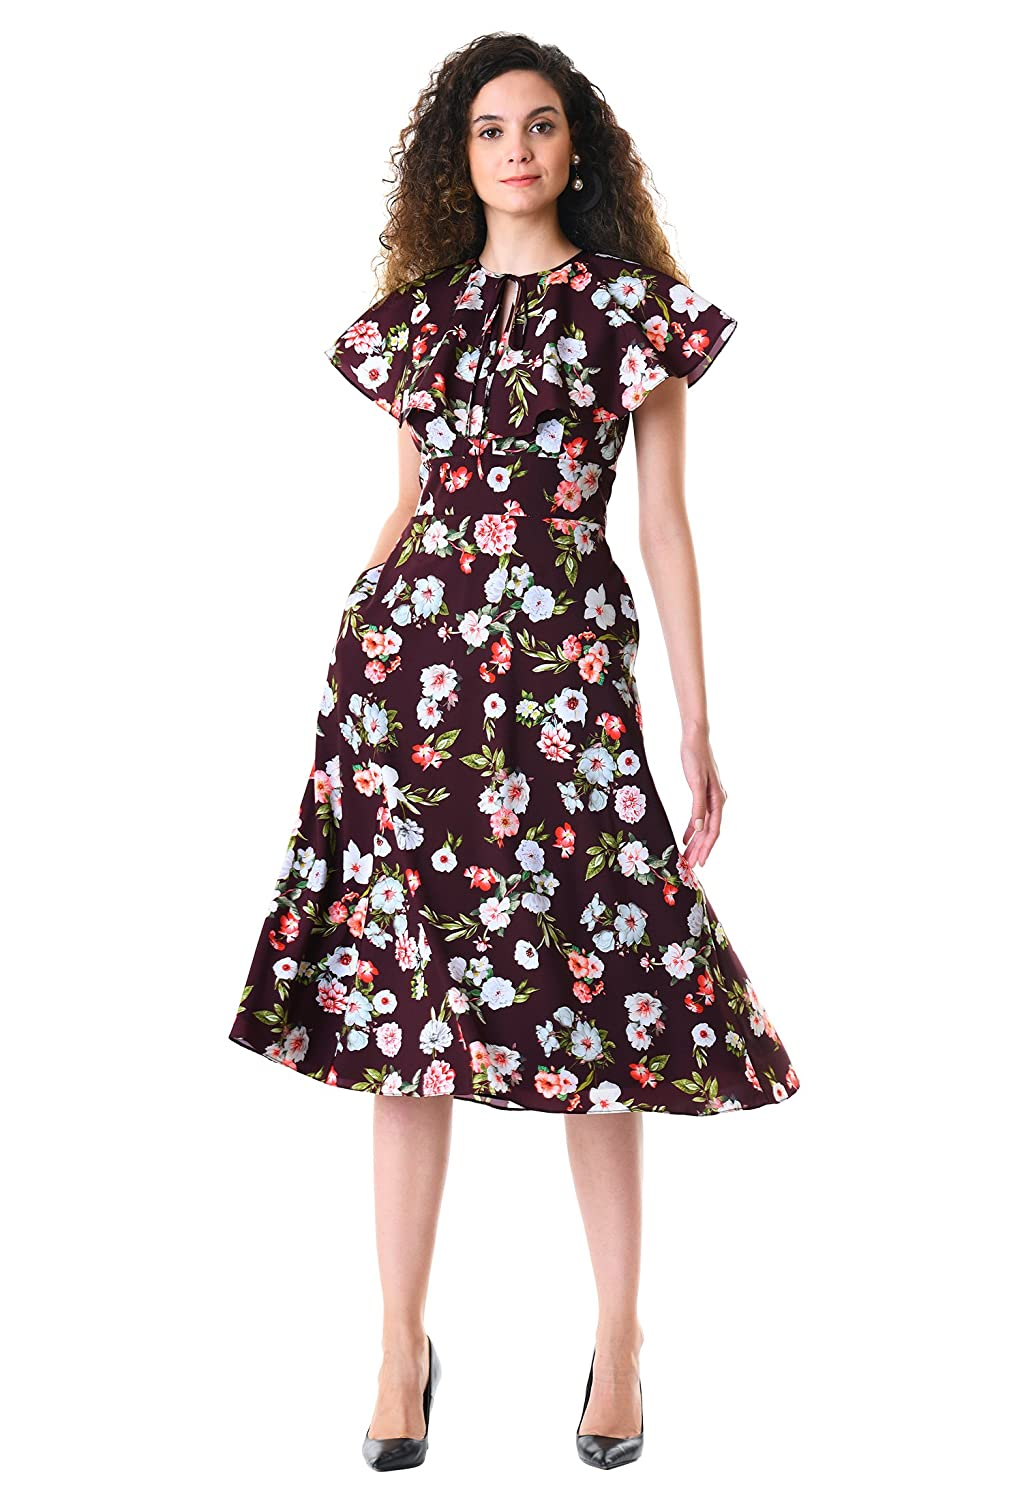 1930s Day Dresses, Afternoon Dresses History eShakti Womens Ruffle Floral Print Crepe Dress $79.95 AT vintagedancer.com